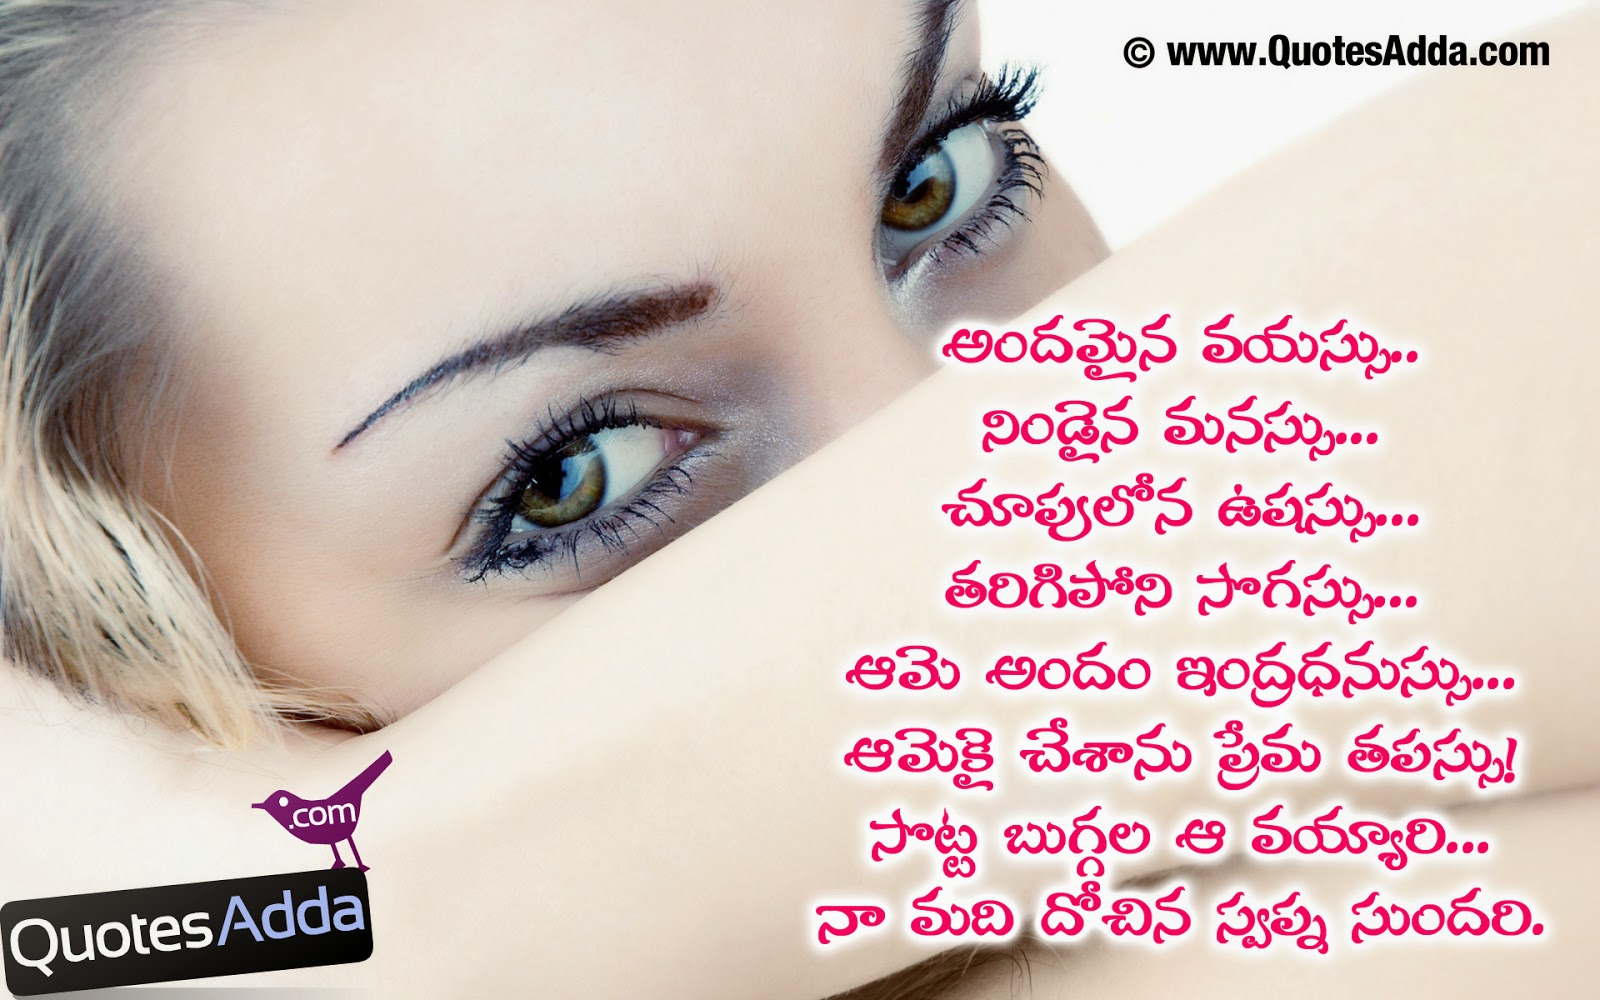 Beautiful Love Quotations in Telugu | QuotesAdda.com ...